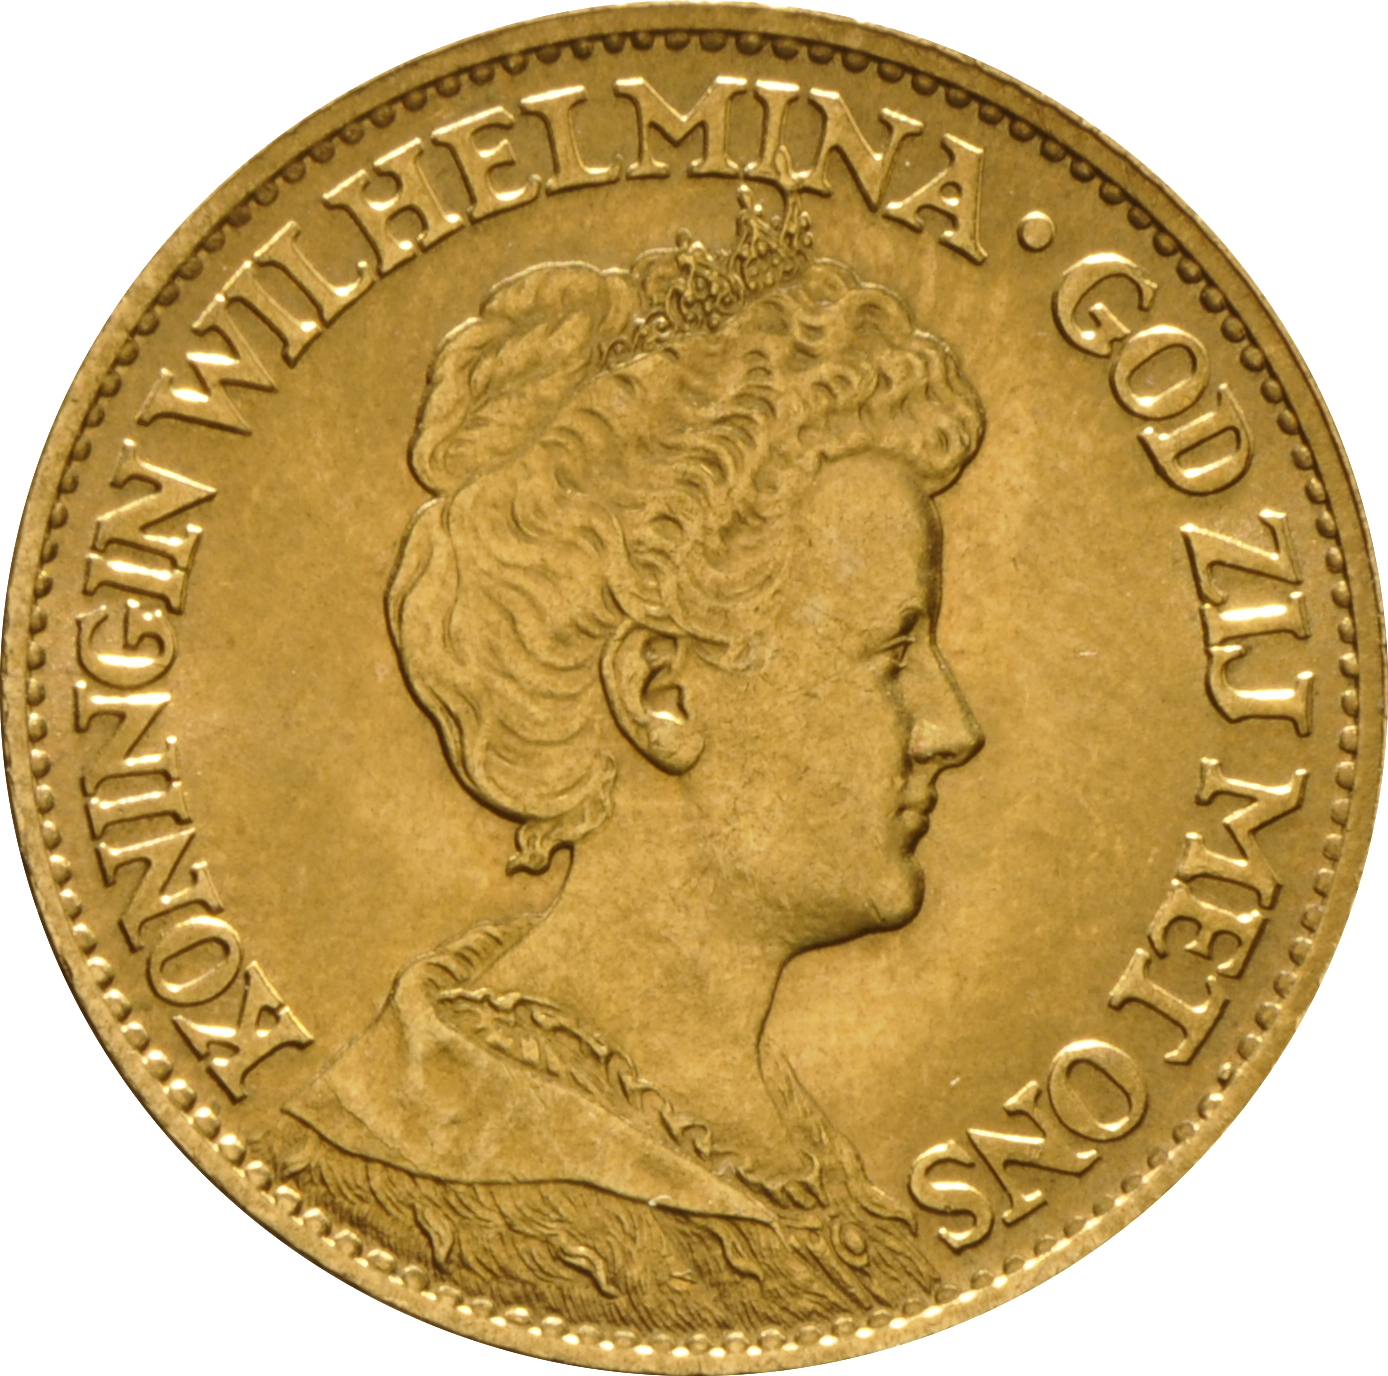 Buy Gold Dutch 10 Guilder Coin Bullionbypost 174 From 163 208